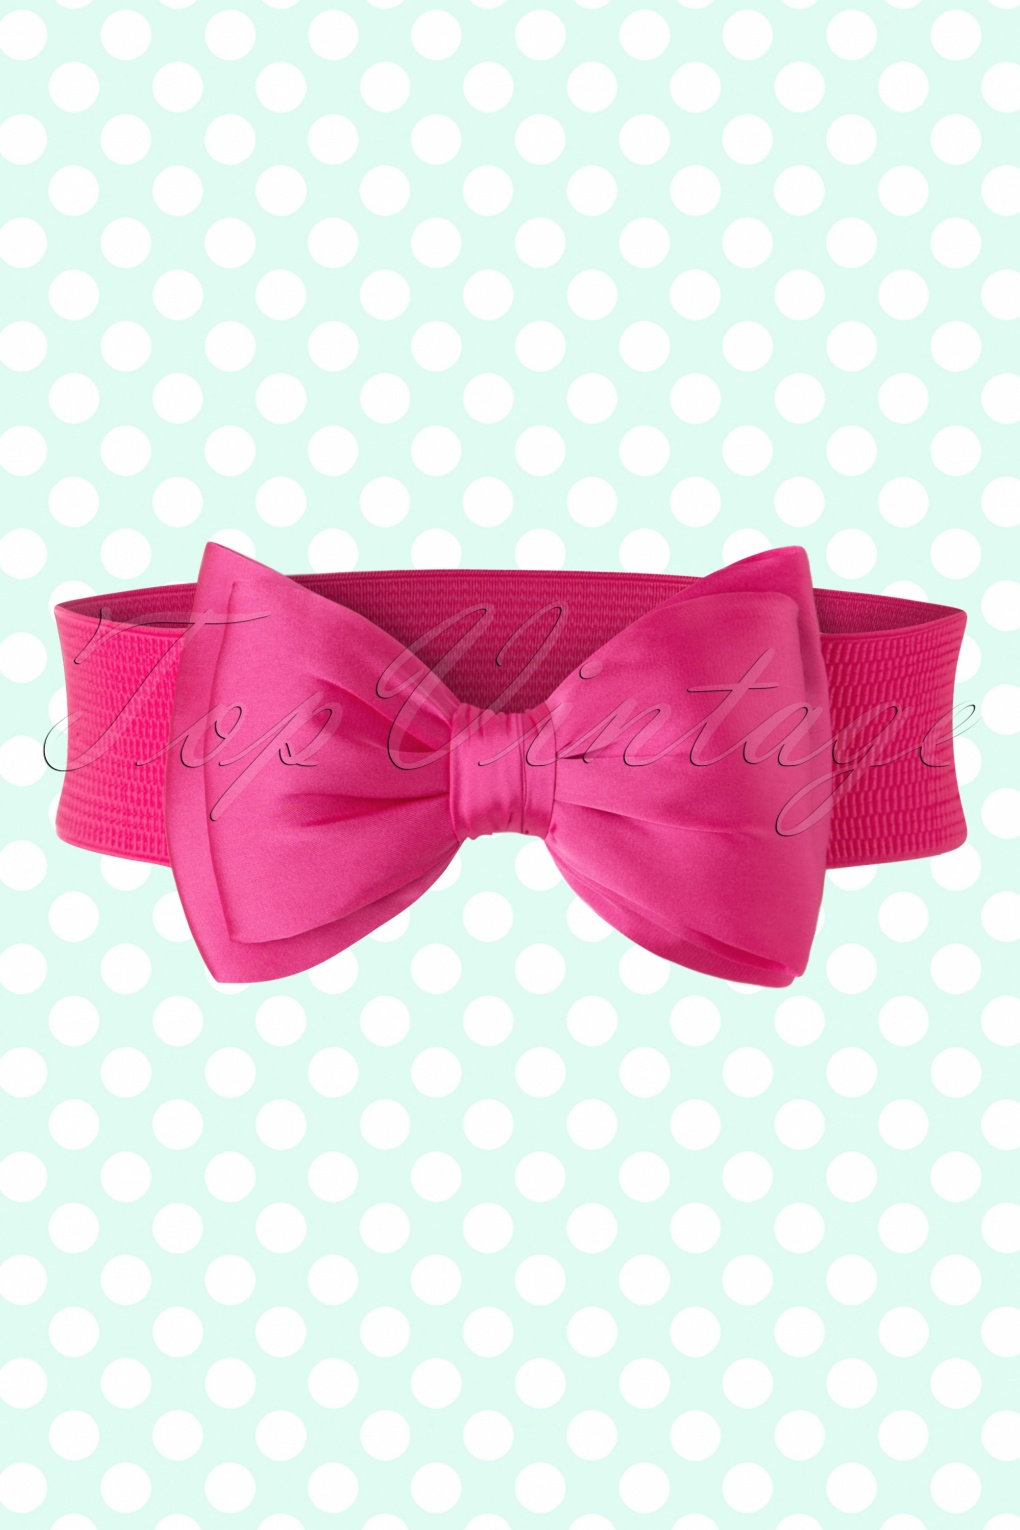 Vintage Wide Belts, Cinch Belts 50s Bella Bow Belt in Pink £8.19 AT vintagedancer.com